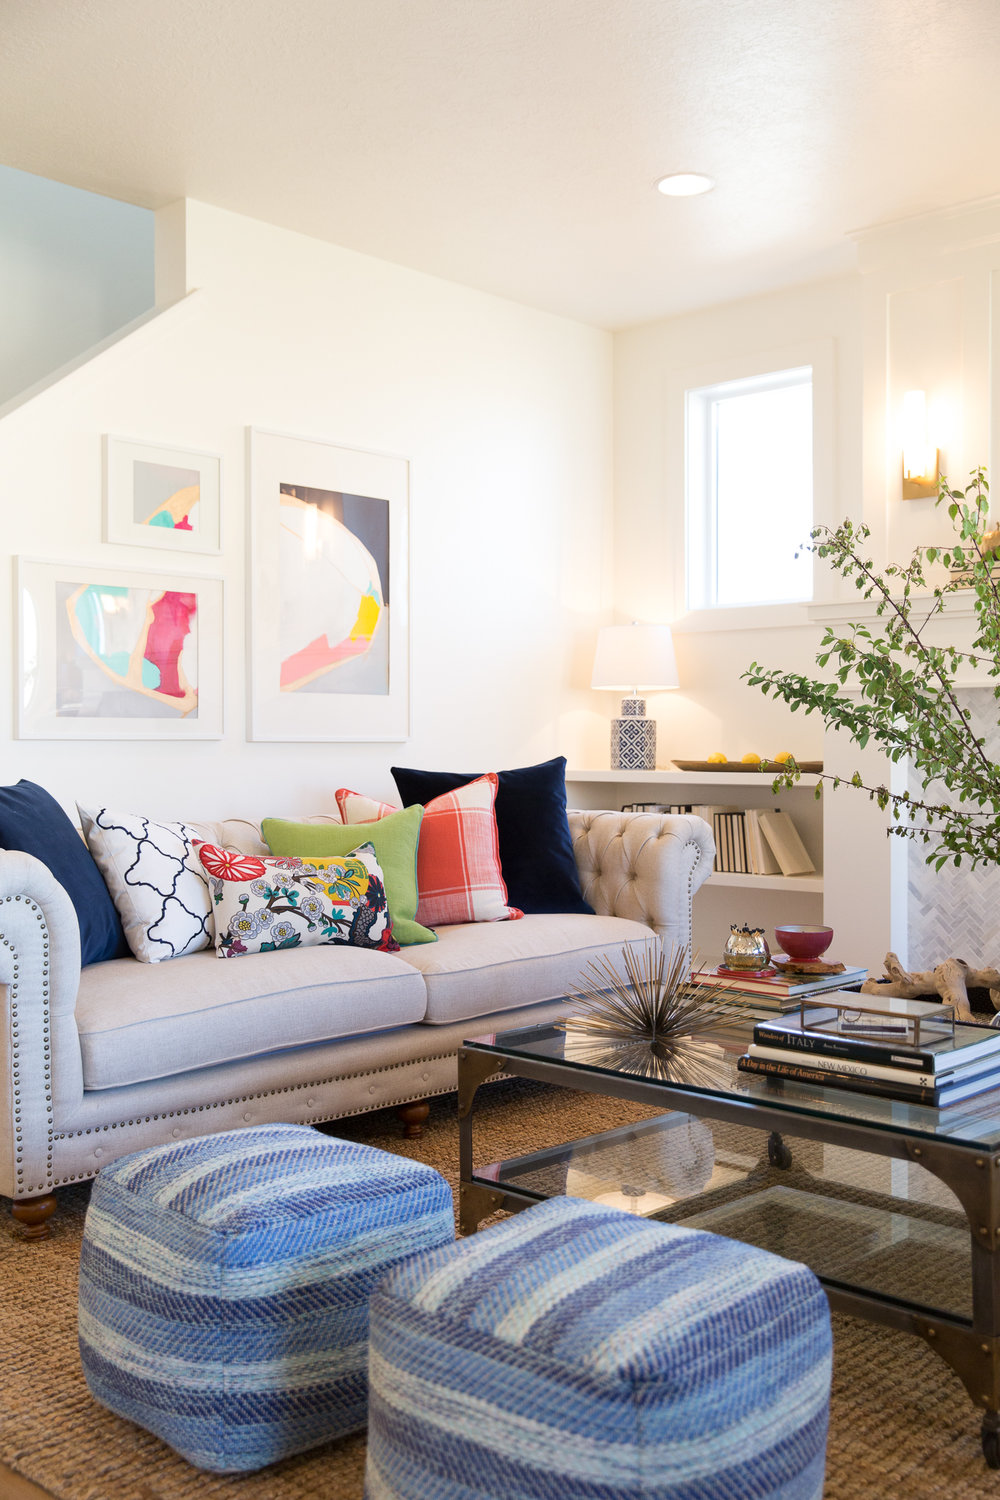 Boise Is Home To Amazing Designer Talent. Interior Design Projects Are  Secretly My Favorite.